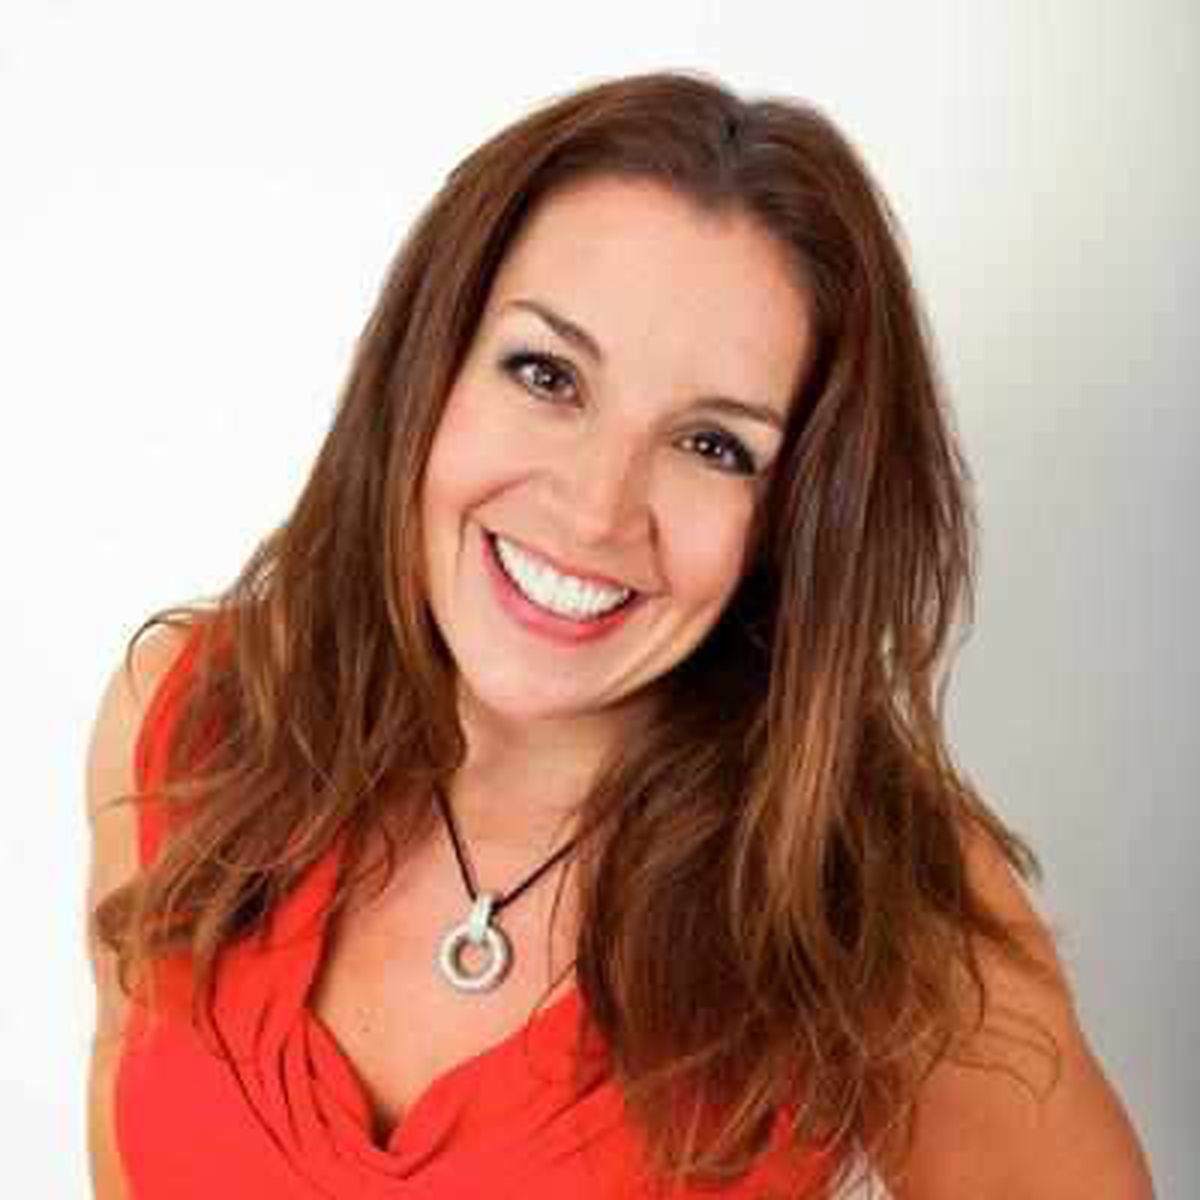 Dragons' Den star Sarah Willingham has thrown her weight behind Staffordshire Day